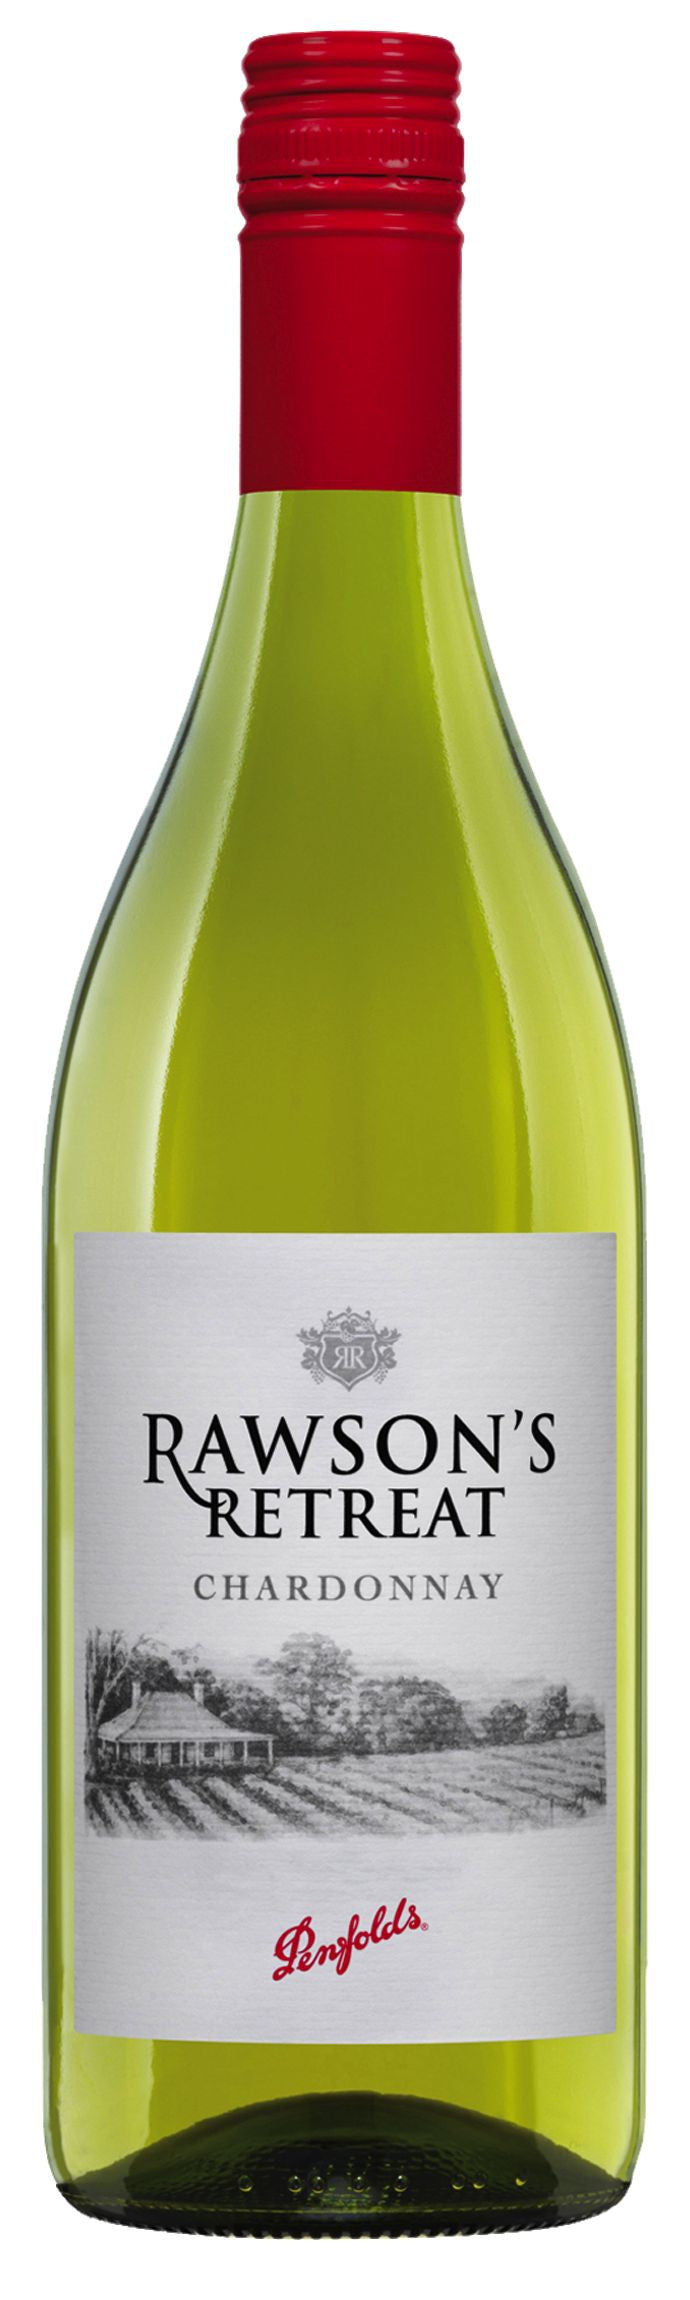 Penfolds Rawsons Retreat Chardonnay